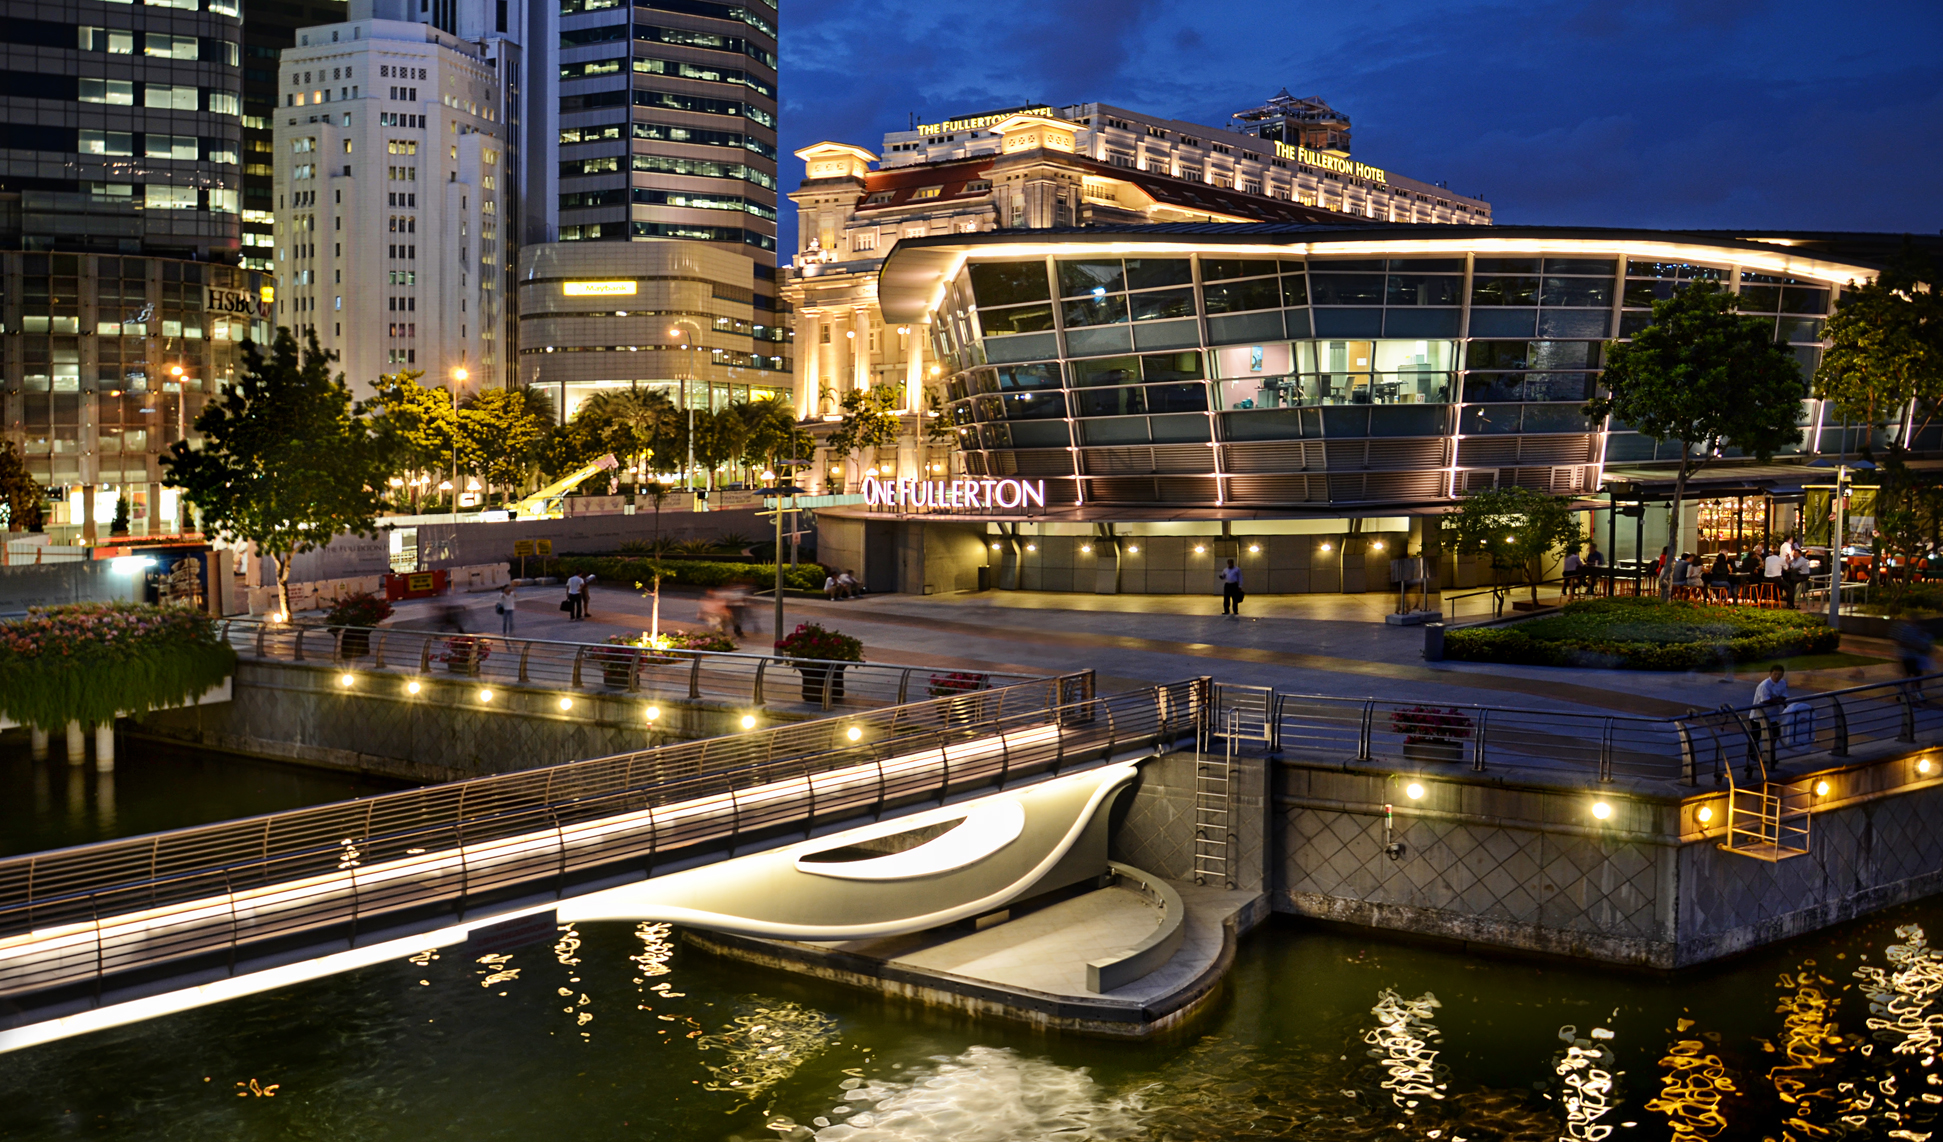 With the new Fullerton Pavilion in place, the view of Marina Bay gets a new vantage point for photographers... - The Fullerton Bay Hotel